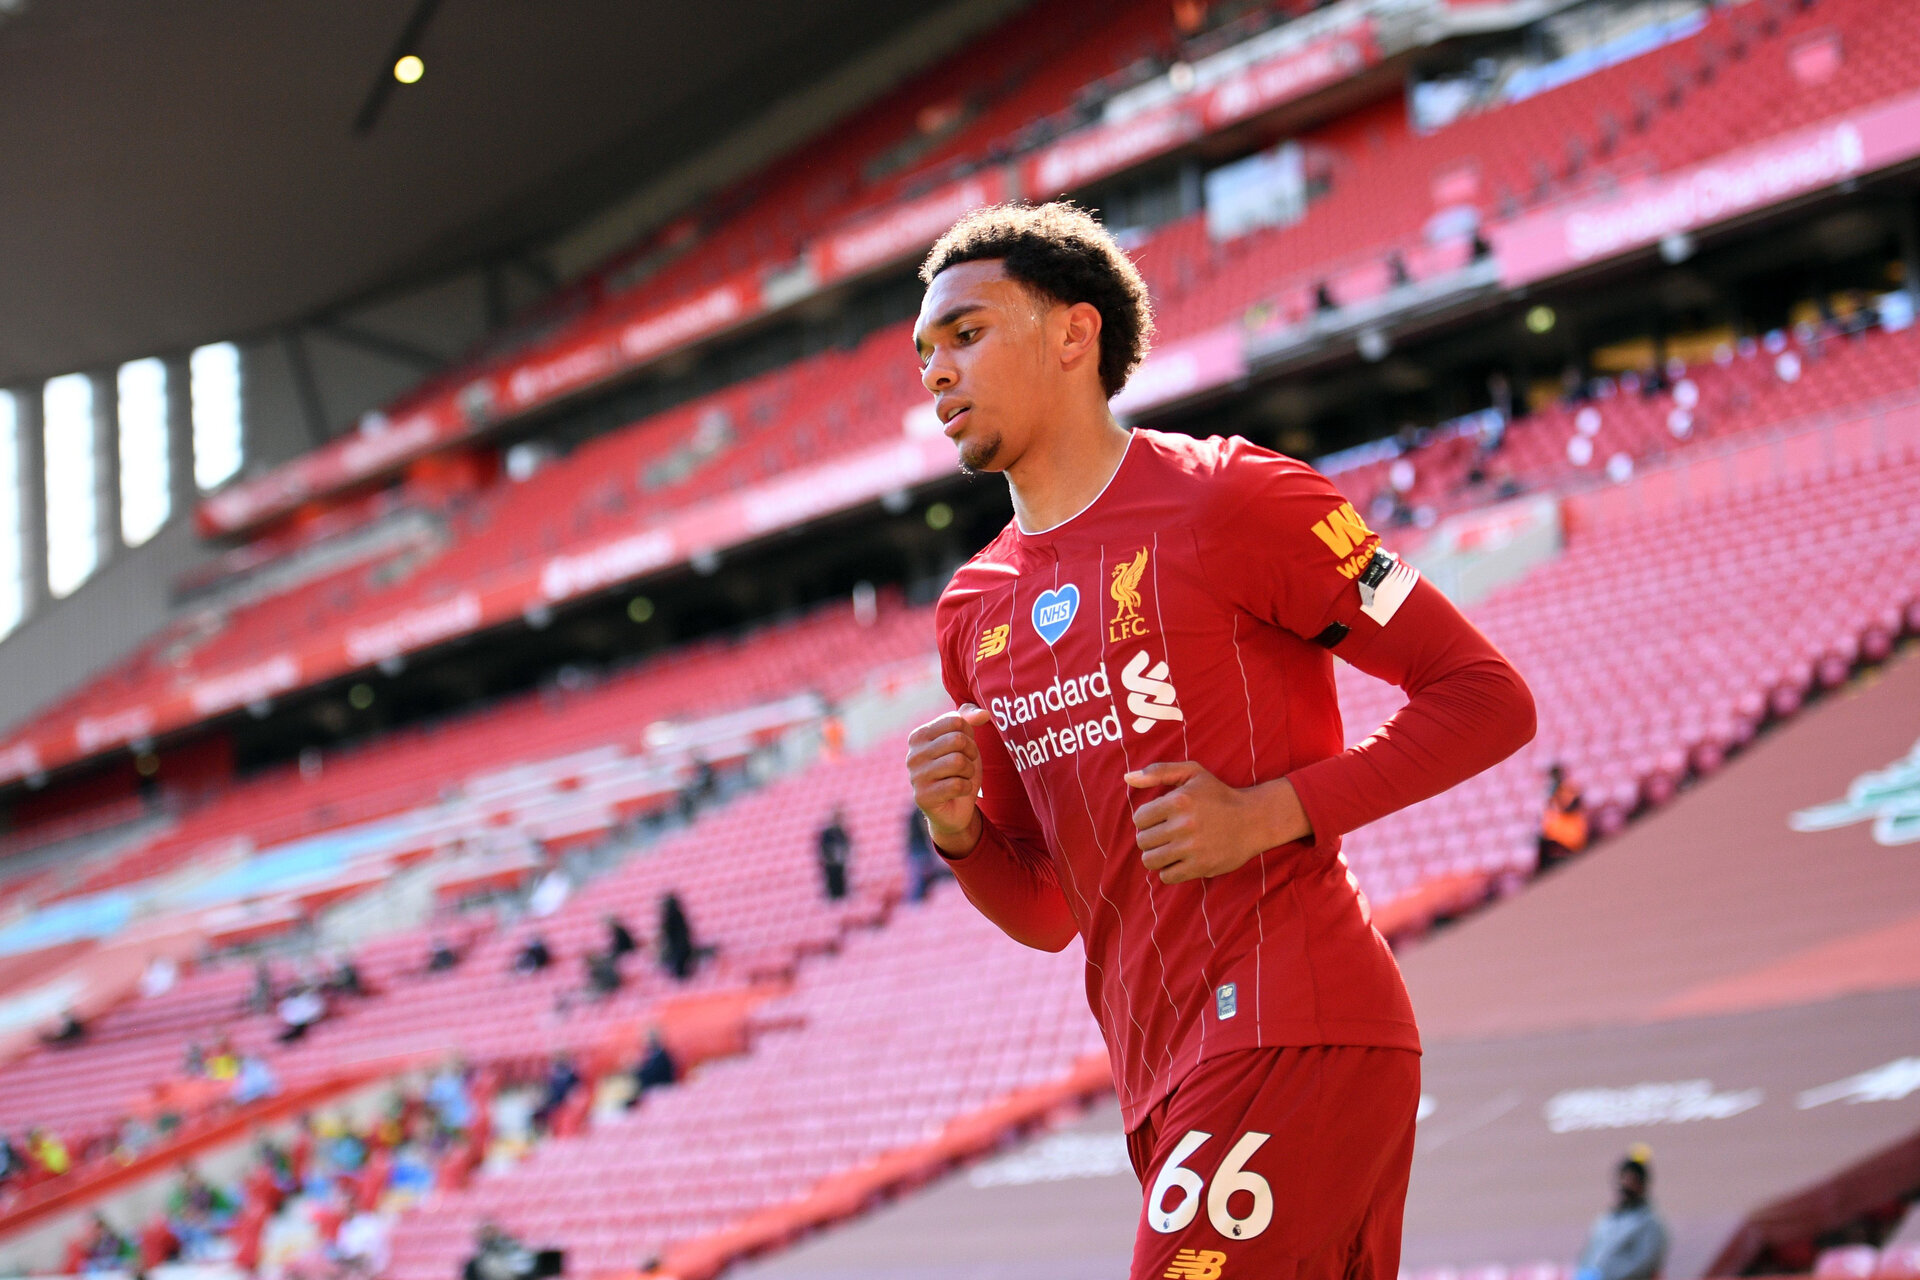 LIVERPOOL, ENGLAND - JULY 11: Trent Alexander-Arnold of Liverpool looks on during the Premier League match between Liverpool FC and Burnley FC at Anfield on July 11, 2020 in Liverpool, England. Football Stadiums around Europe remain empty due to the Coronavirus Pandemic as Government social distancing laws prohibit fans inside venues resulting in all fixtures being played behind closed doors. (Photo by Oli Scarff/Pool via Getty Images)